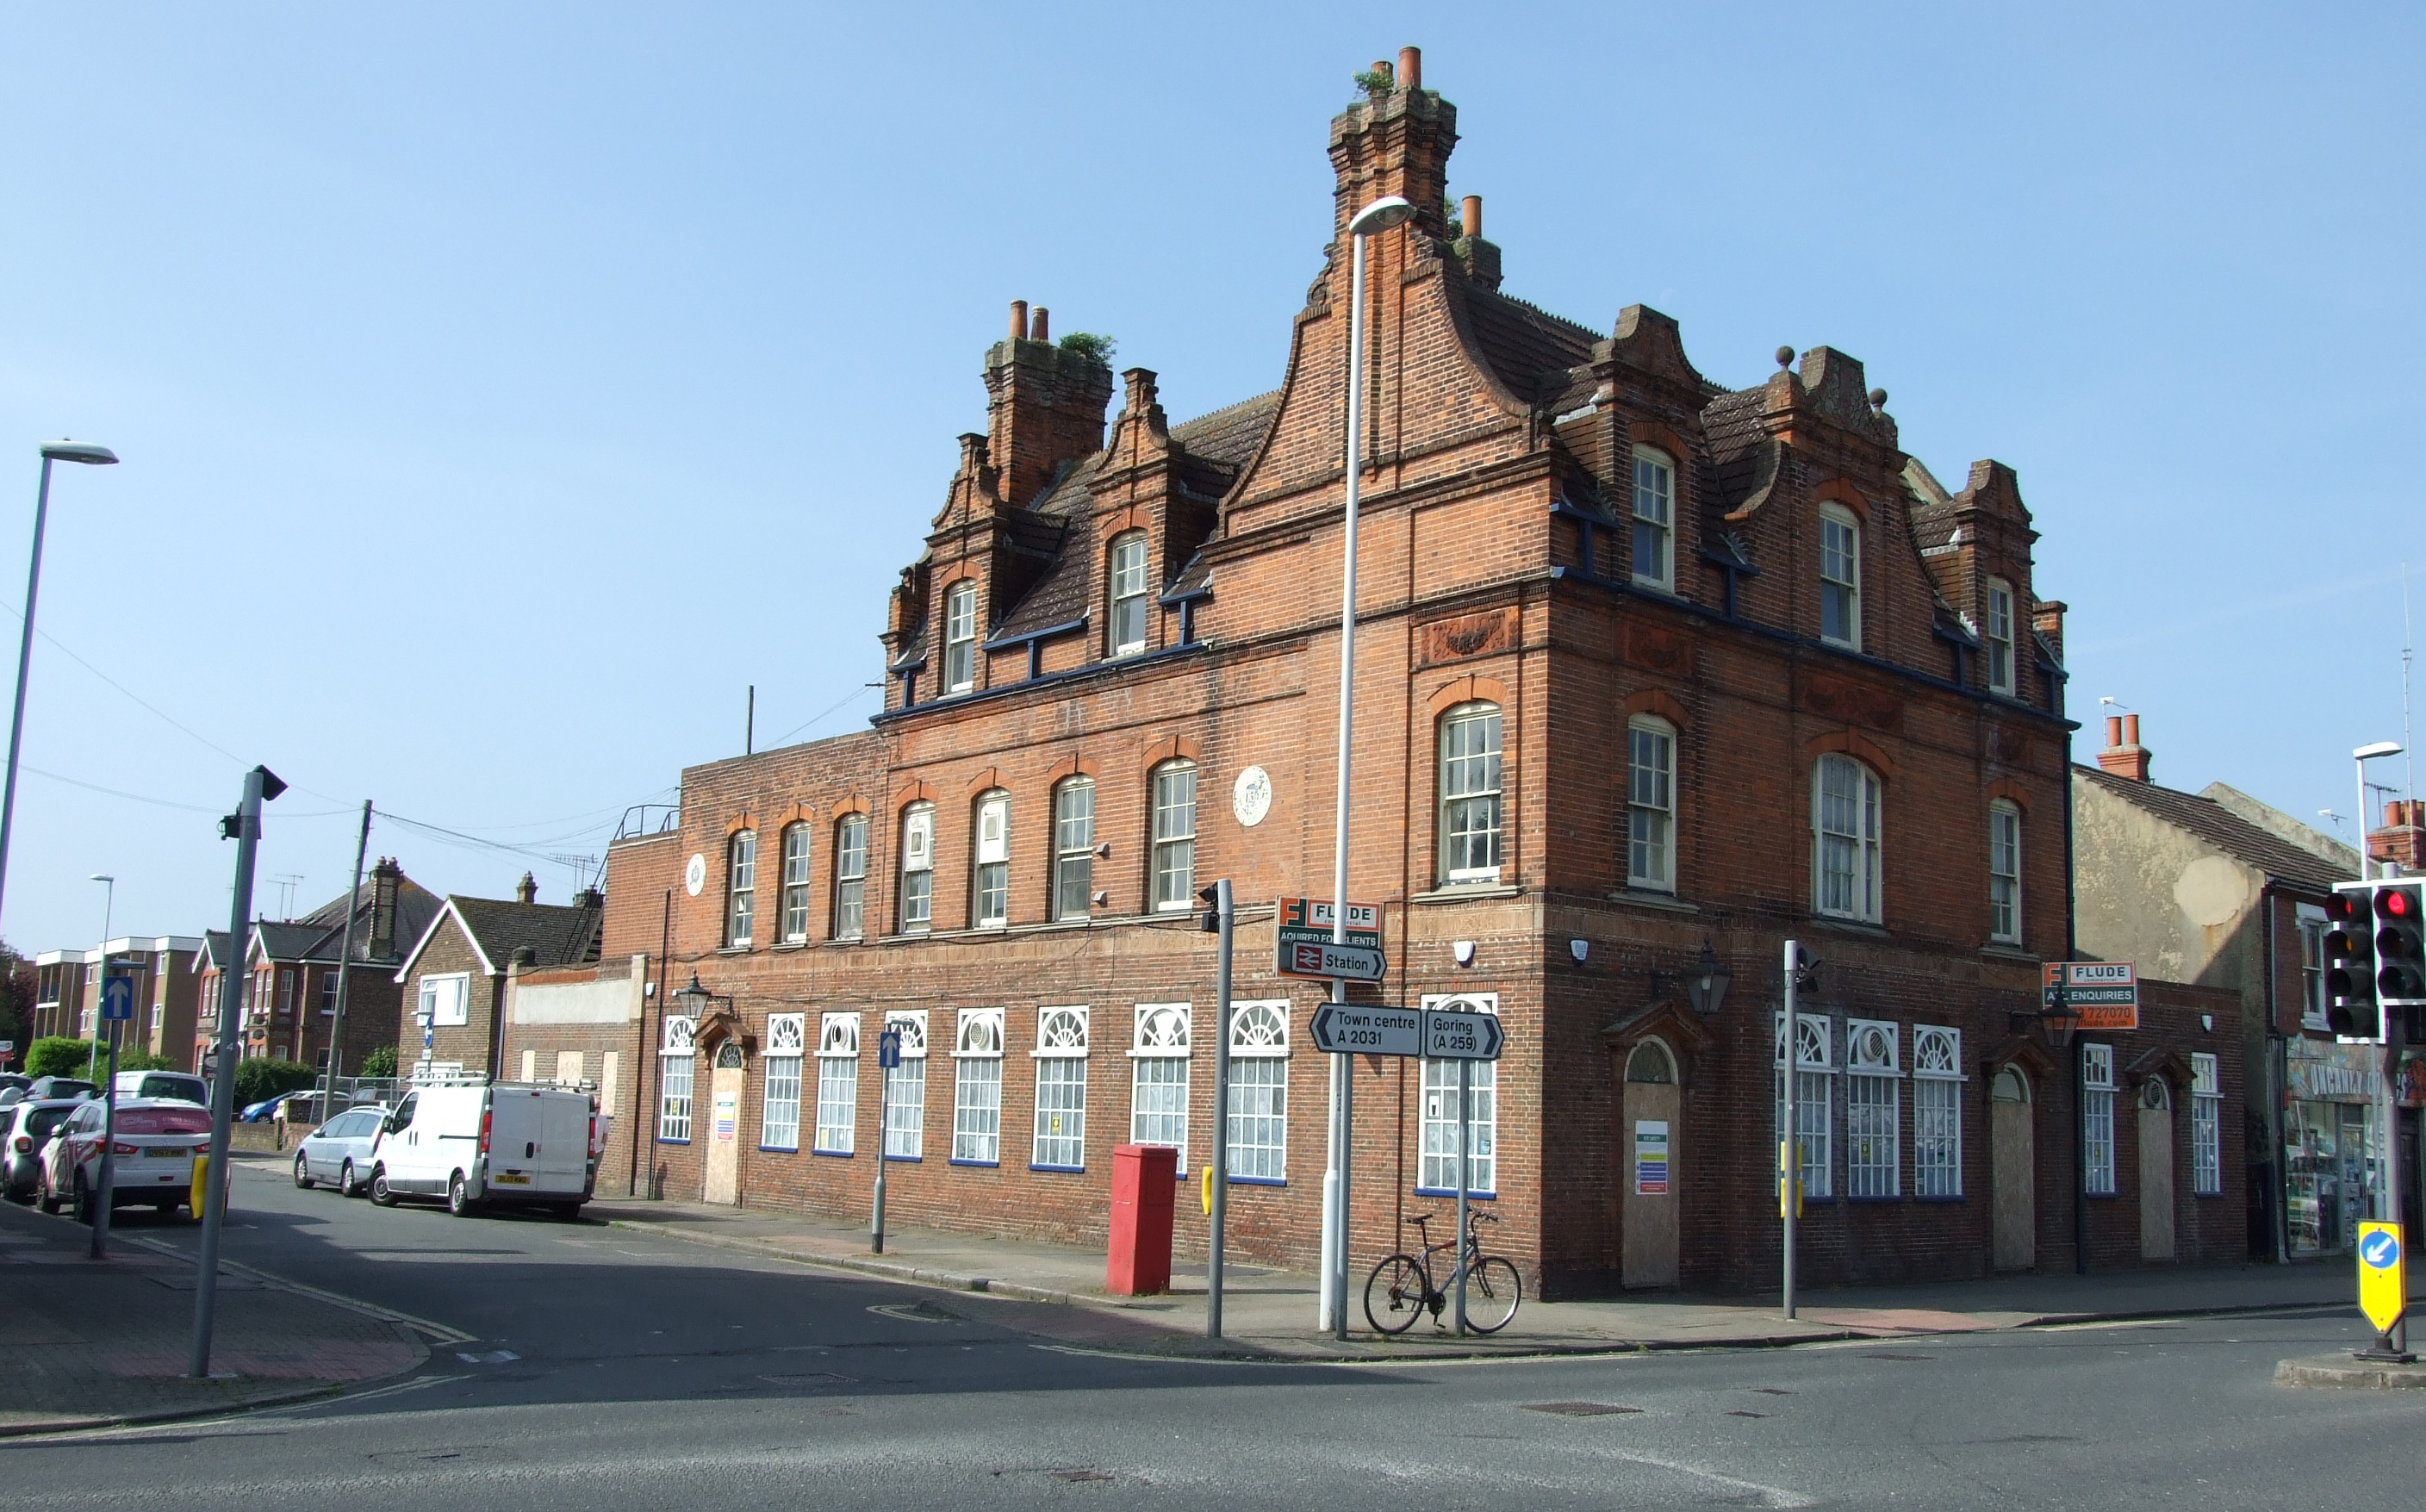 New Sale Completed - 1 Station Parade, Tarring Road, Worthing